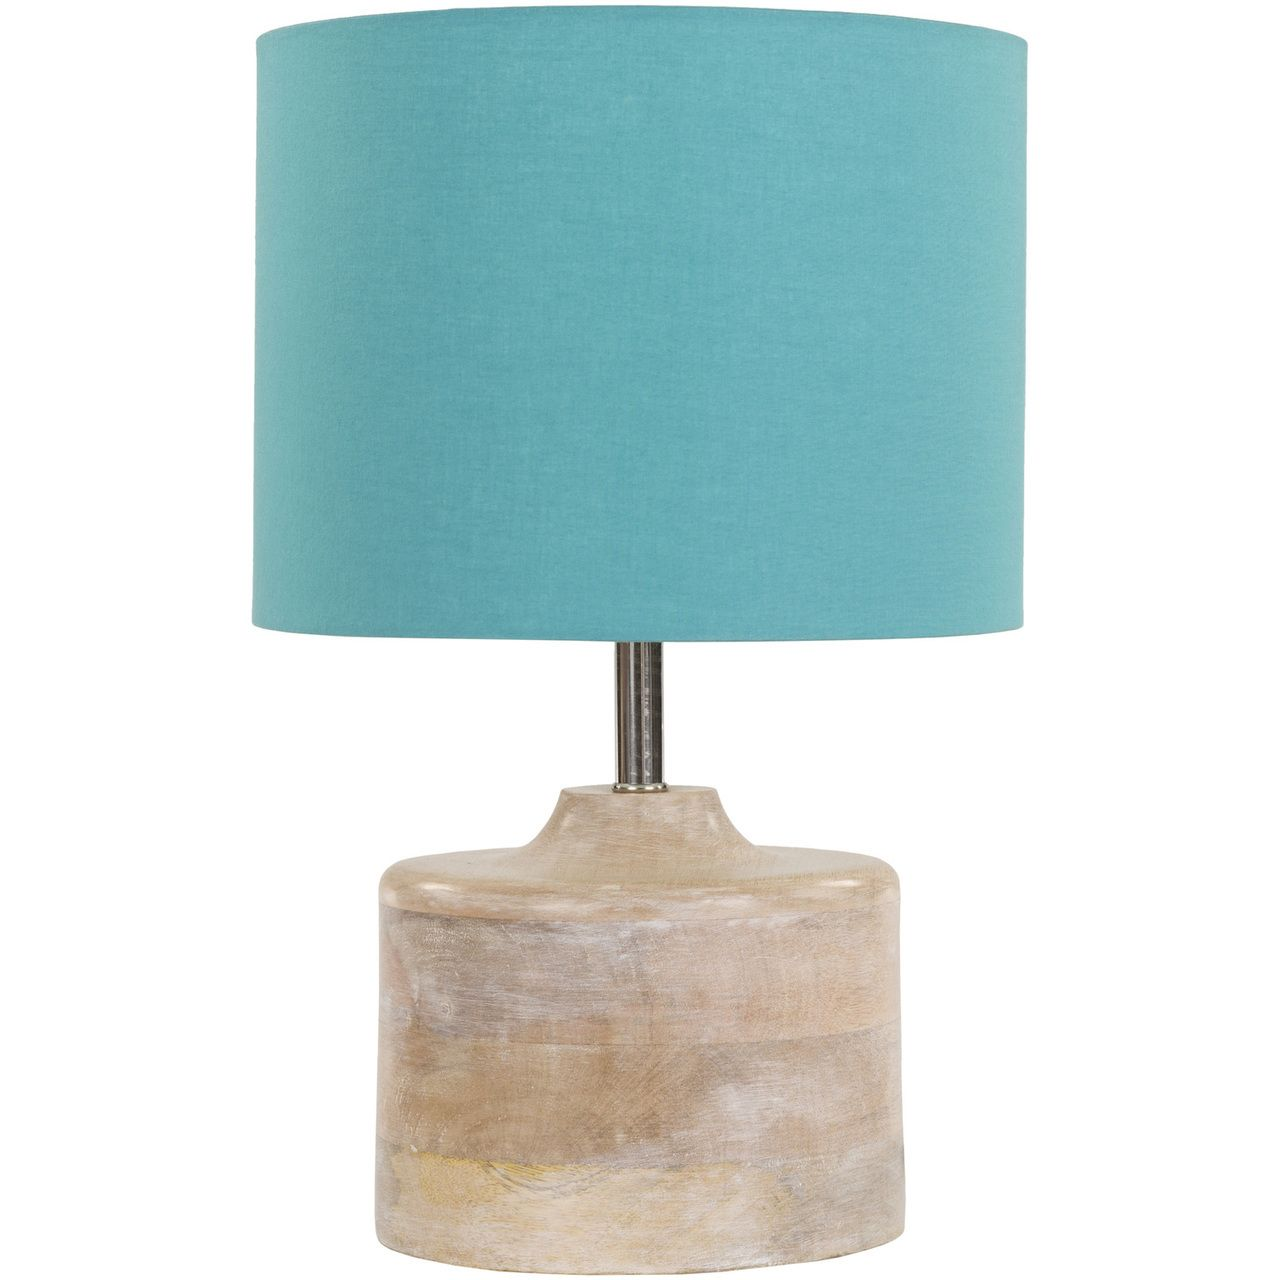 Coast mango wood table lamp blue shade wood table lamp bases art of knot burcham cottagecountry table lamp blue geotapseo Images